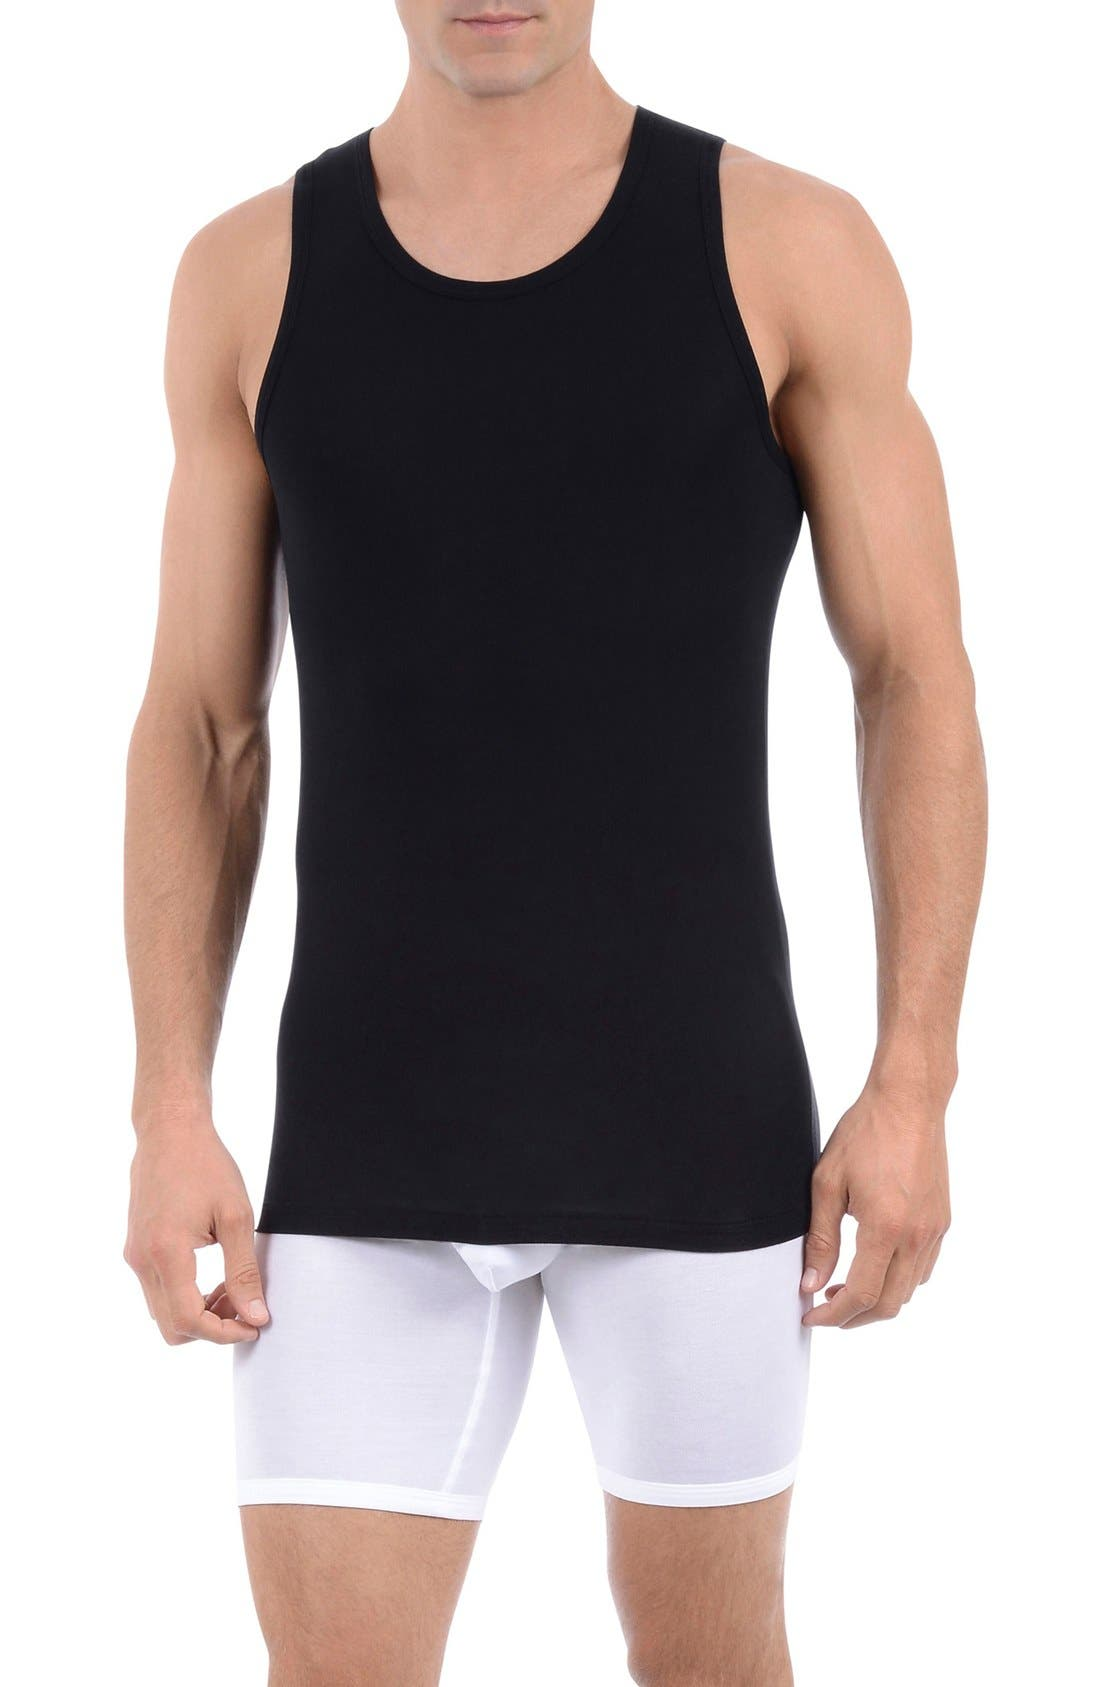 Main Image - Tommy John 'Second Skin' Tank Undershirt